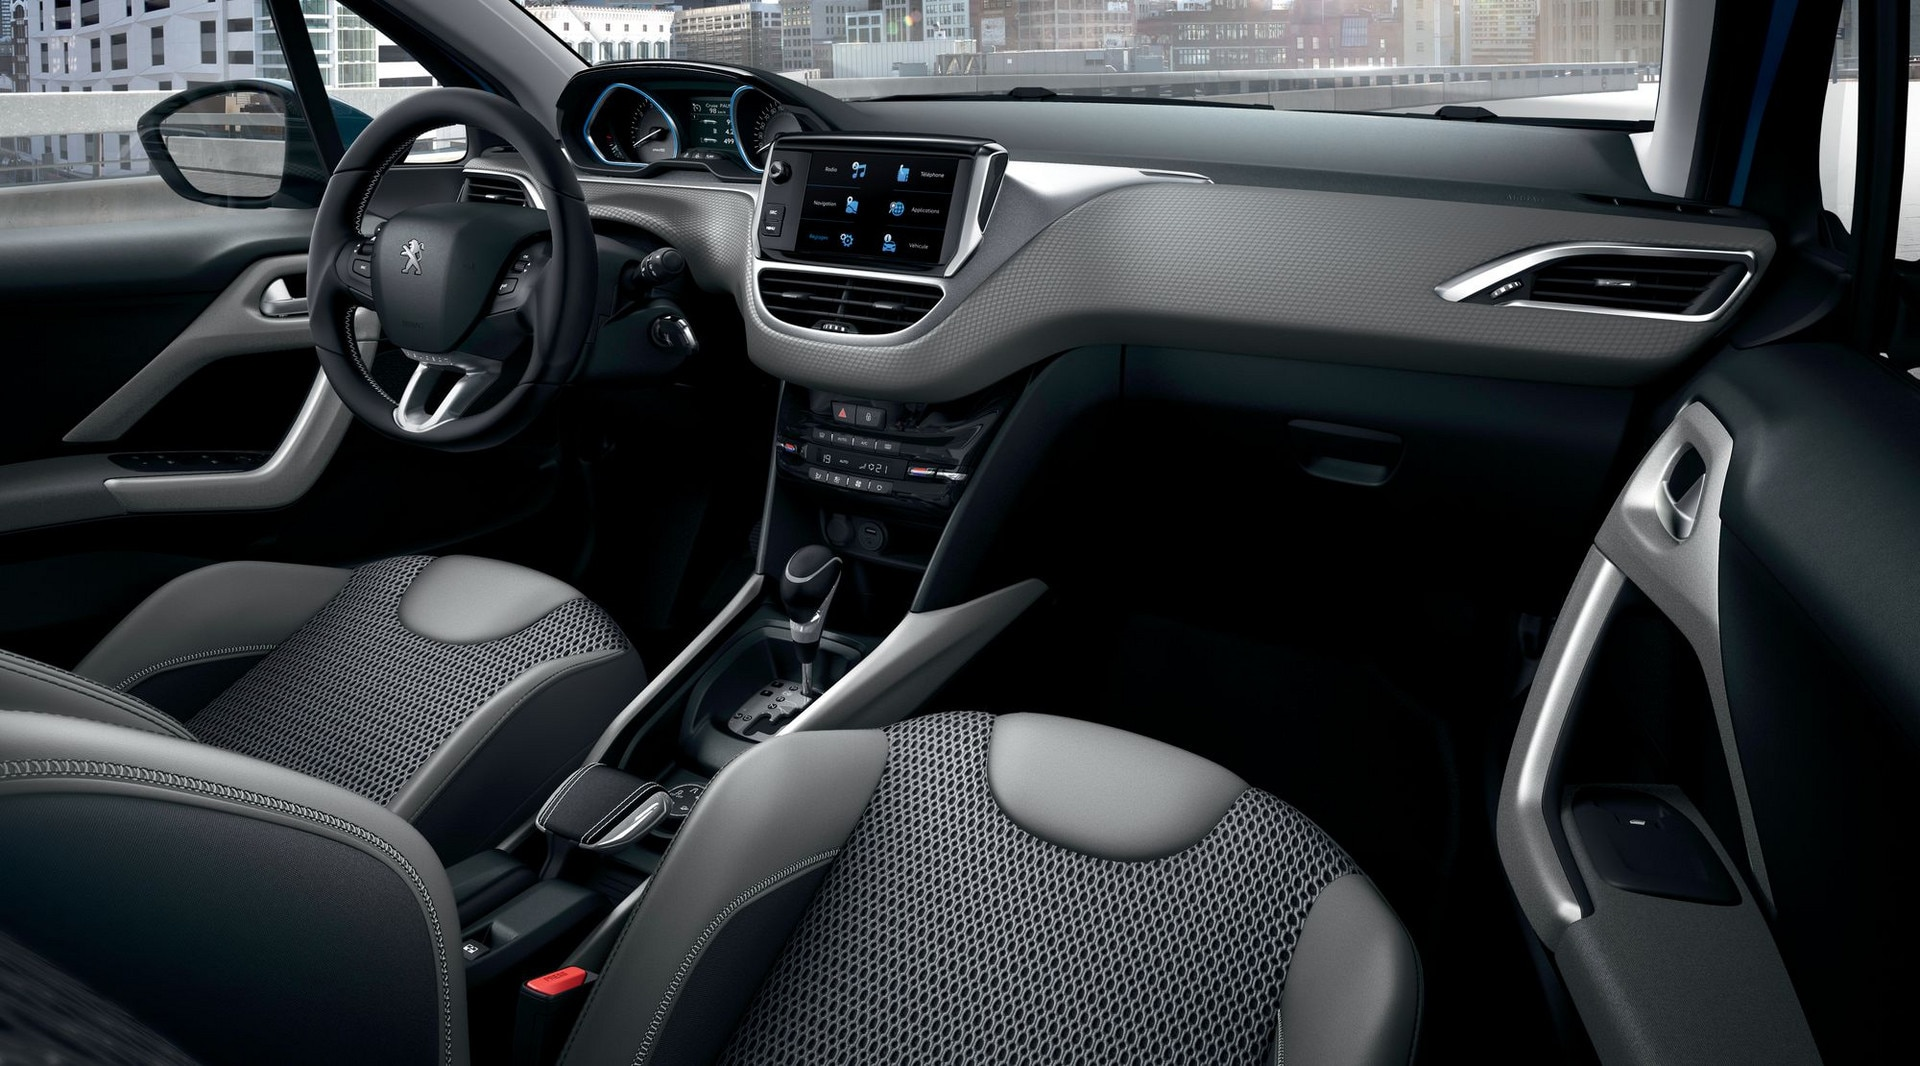 peugeot 2008 try the compact suv car by peugeot